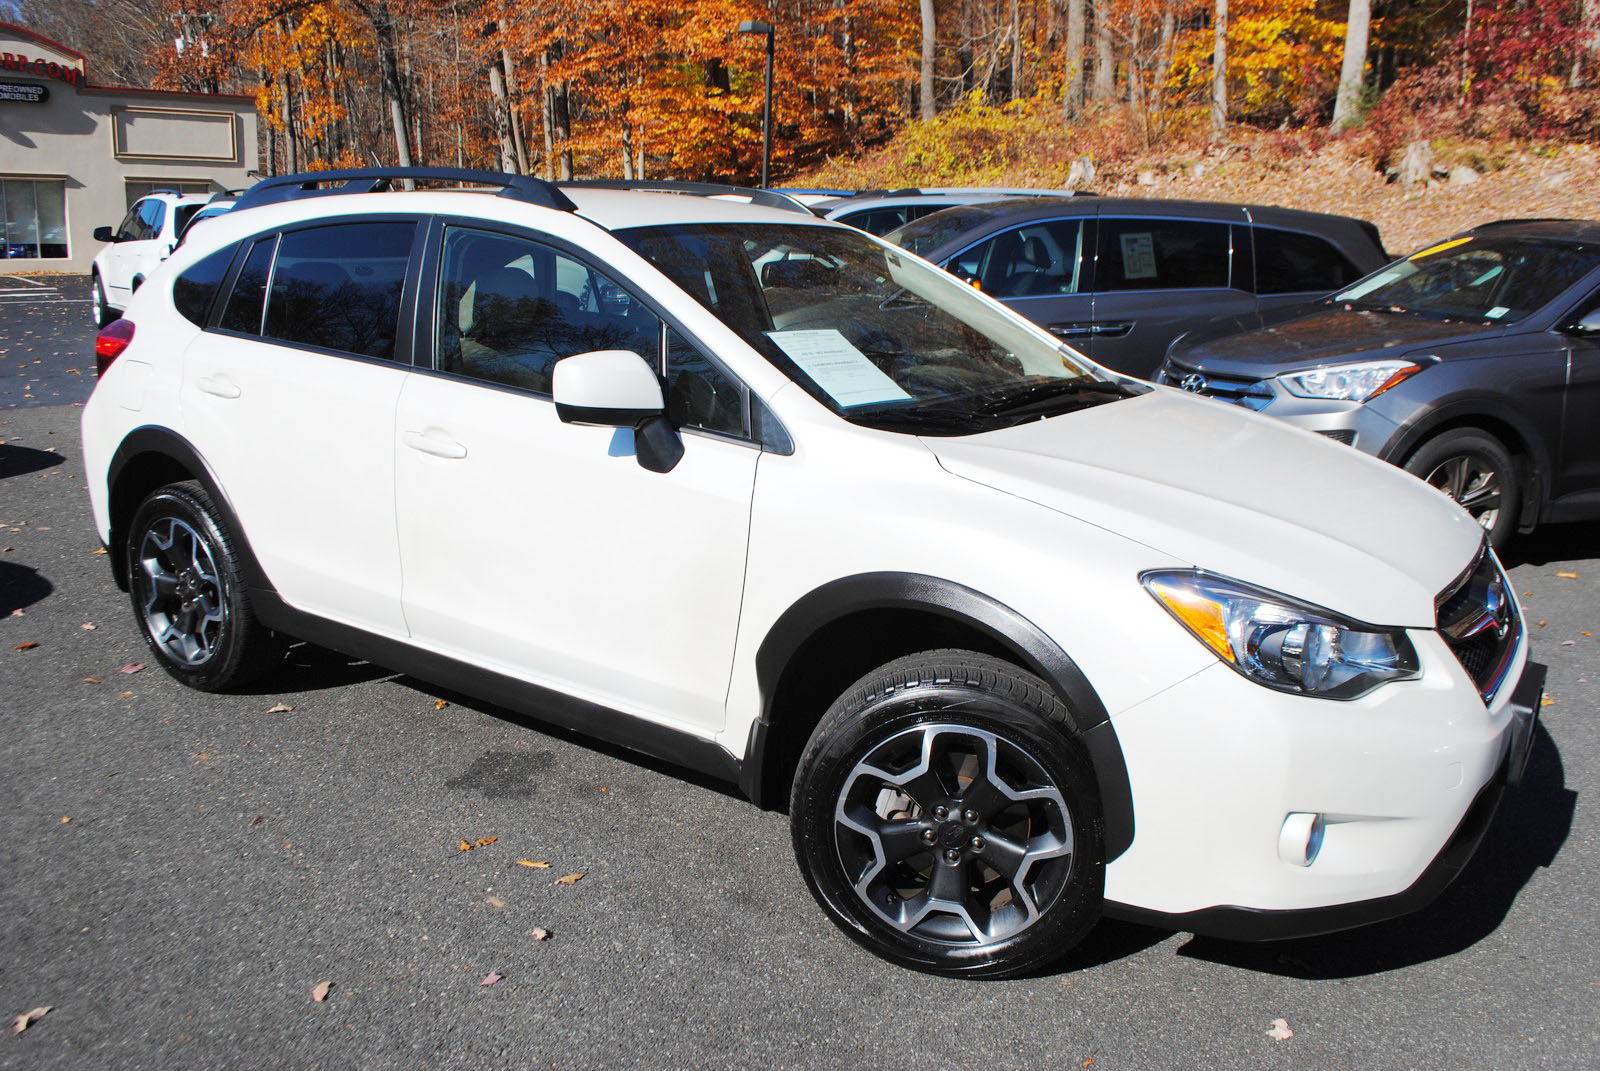 2014 Subaru Xv Crosstrek 2.0I Limited >> Used 2014 Subaru XV Crosstrek For Sale | West Milford NJ